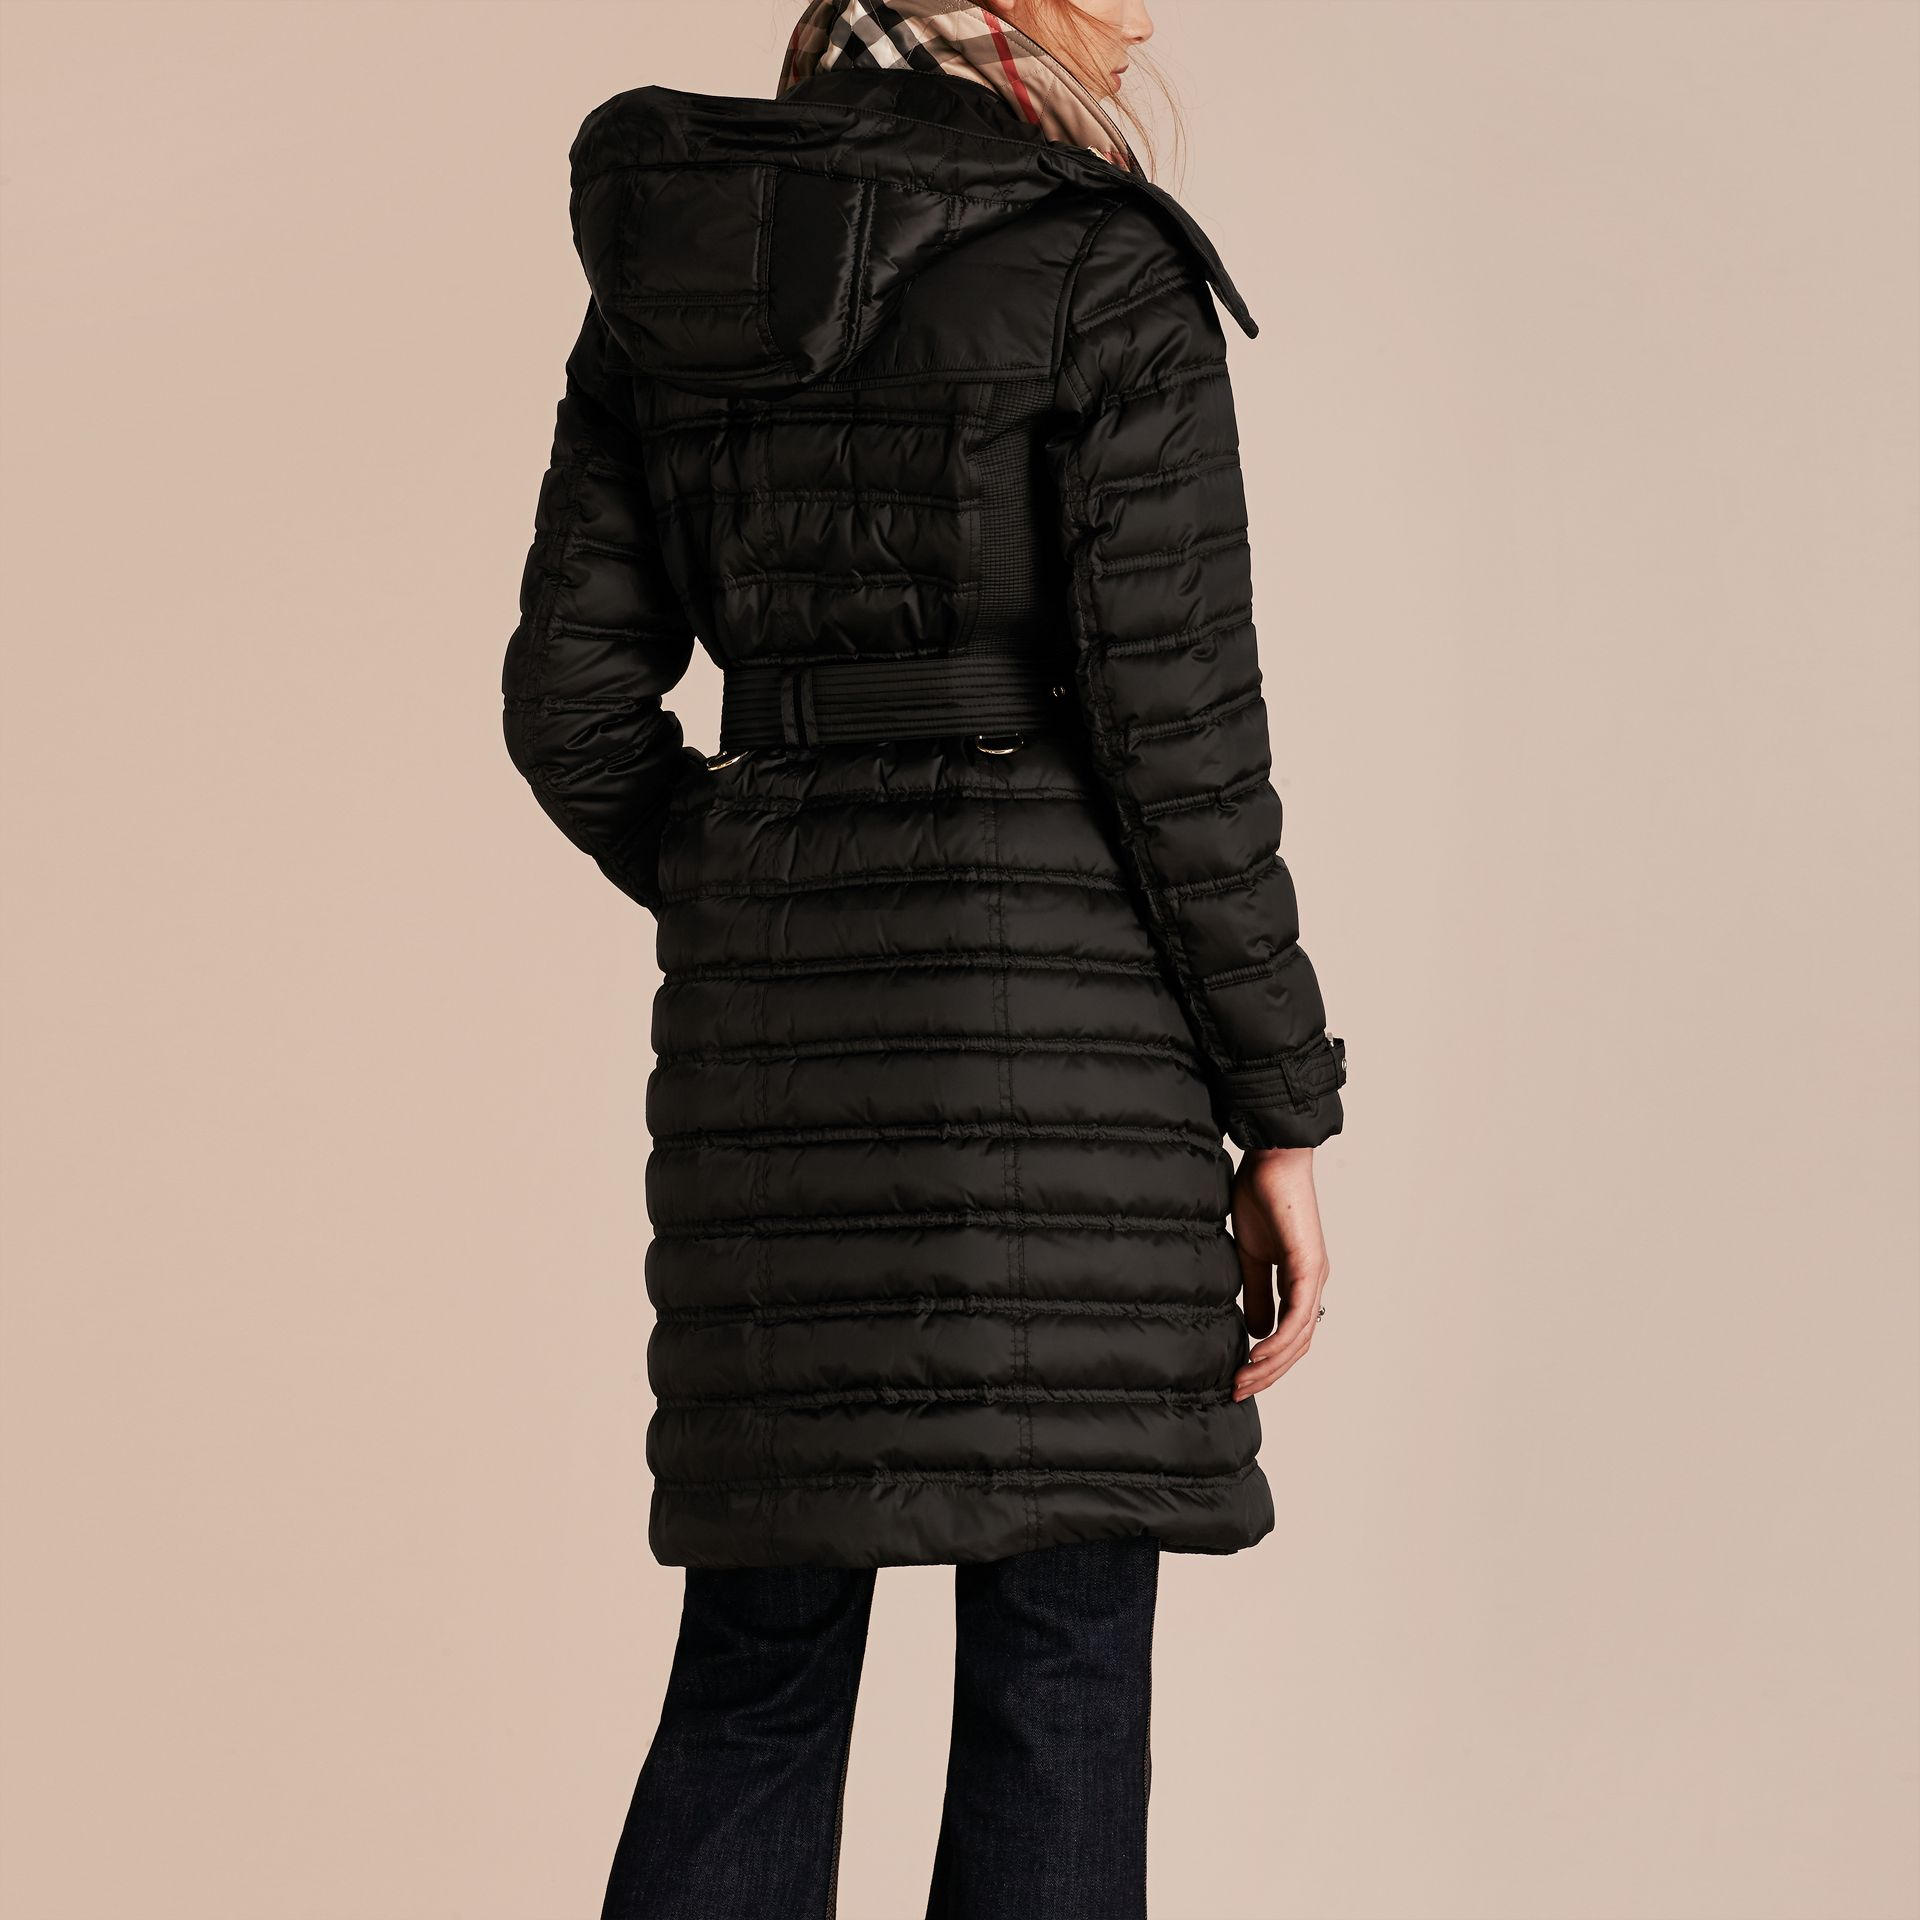 Black Down-filled Puffer Coat with Detachable Hood Black - gallery image 3